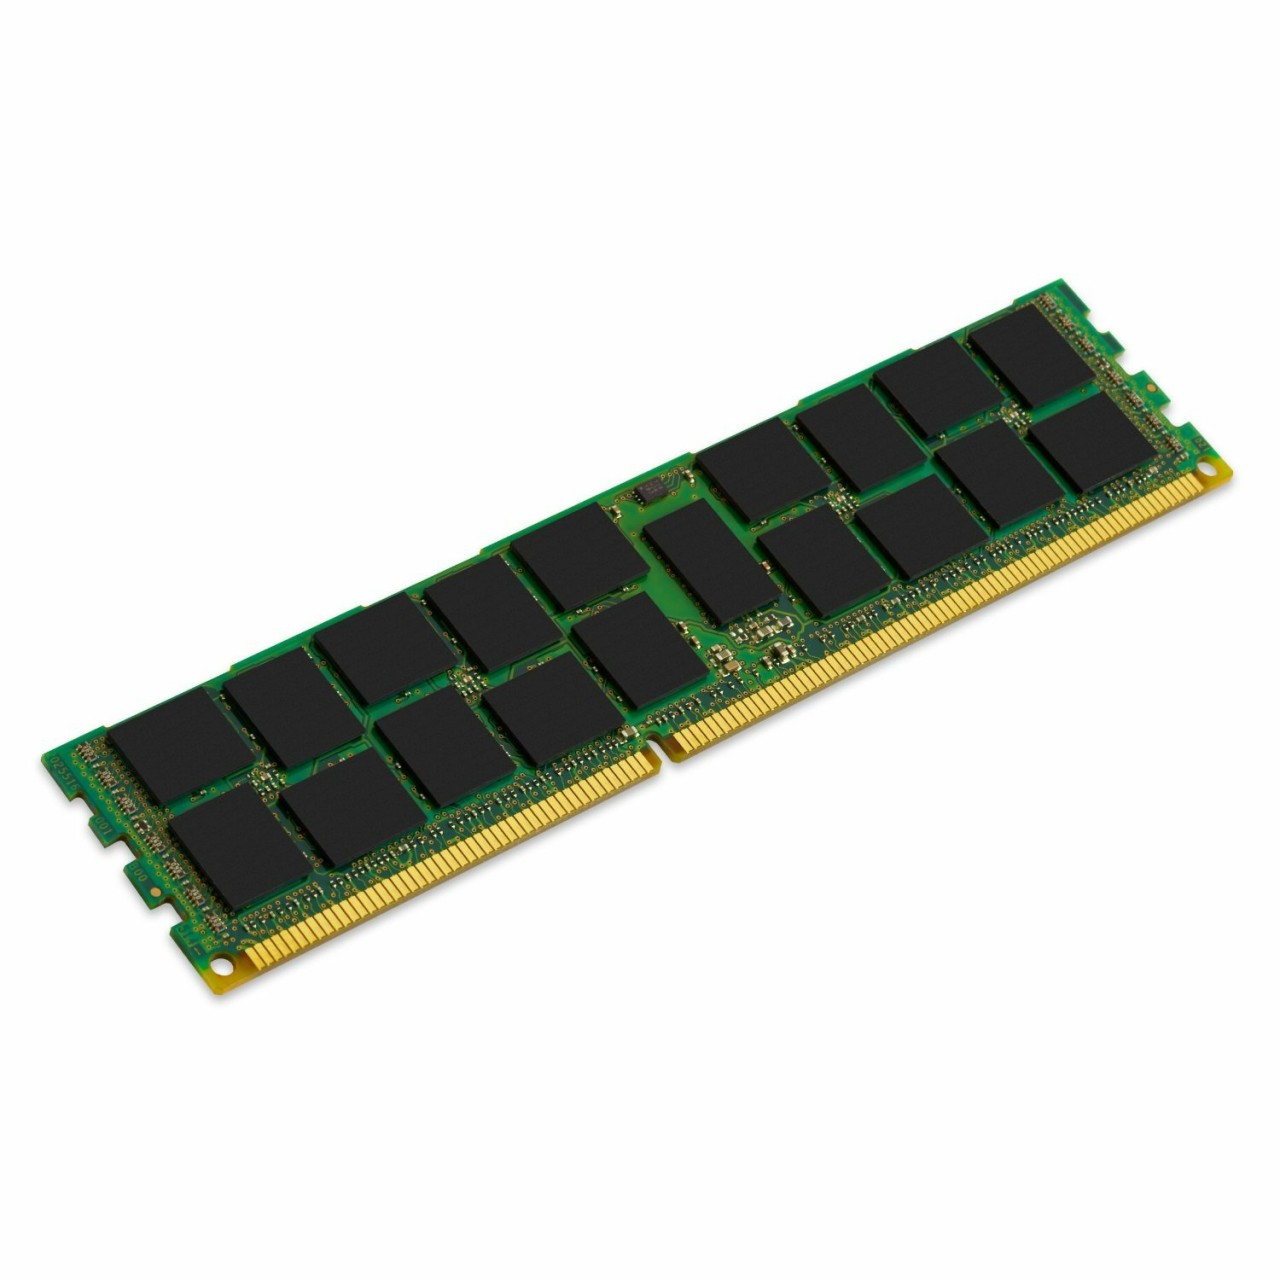 KINGSTON KTD-PE316LV/16G